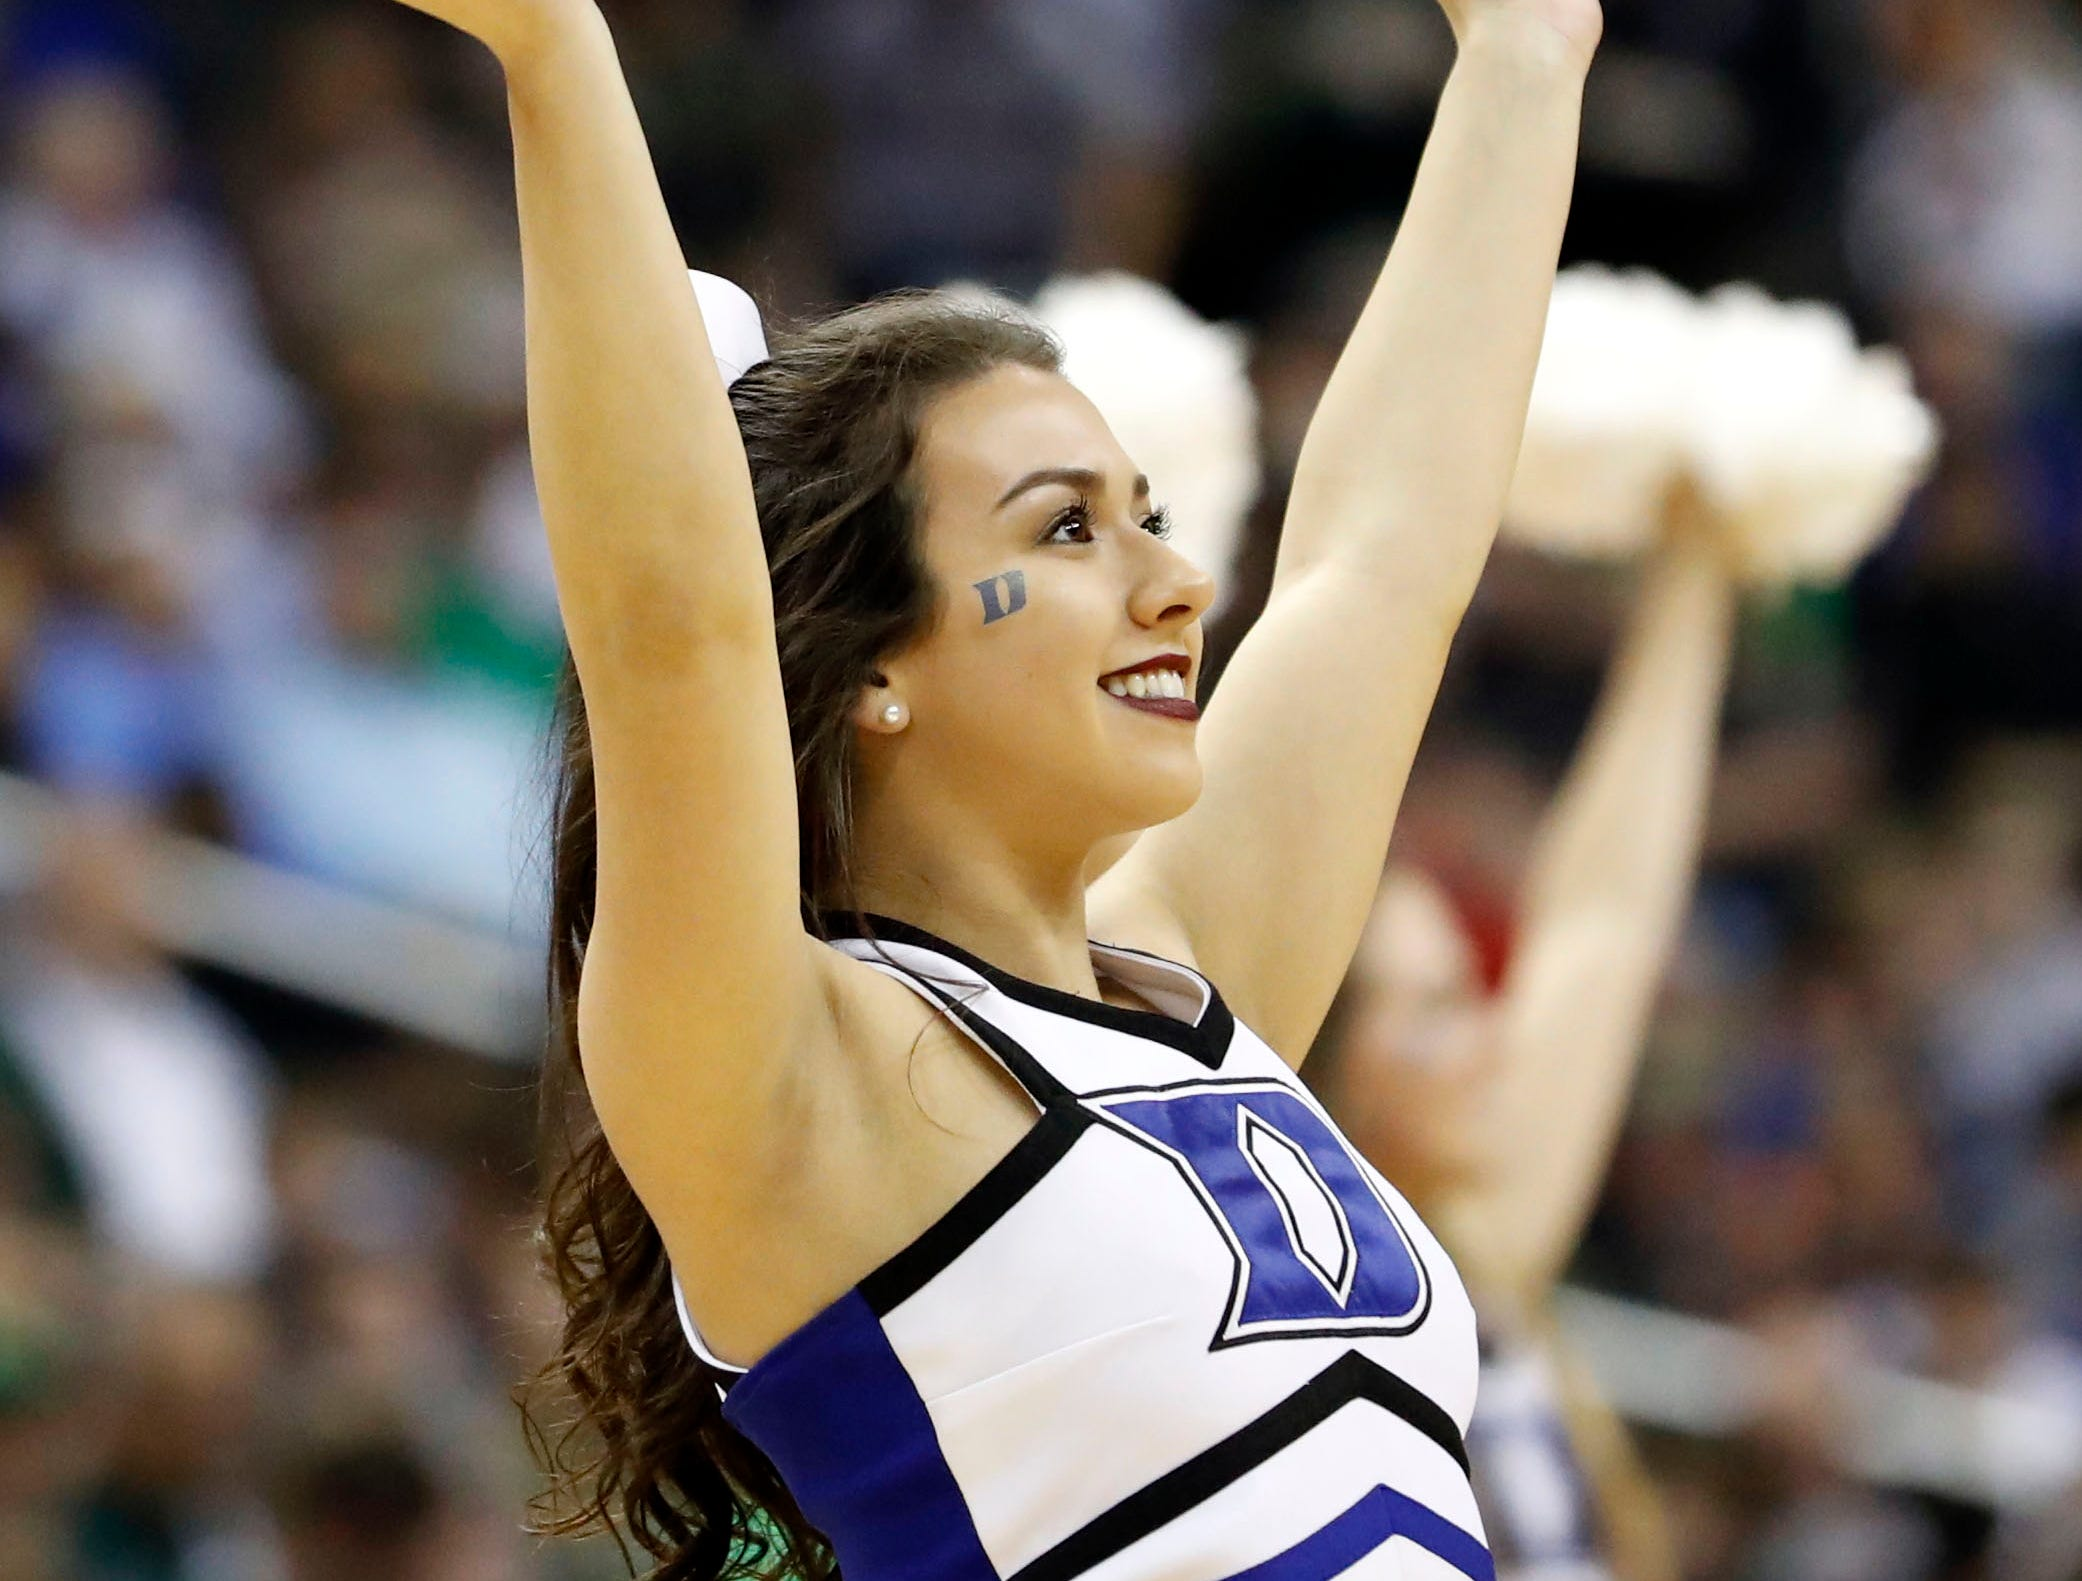 Mar 31, 2019; Washington, DC, USA; Duke Blue Devils cheerleader during the first half against the Michigan State Spartans in the championship game of the east regional of the 2019 NCAA Tournament at Capital One Arena. Mandatory Credit: Geoff Burke-USA TODAY Sports